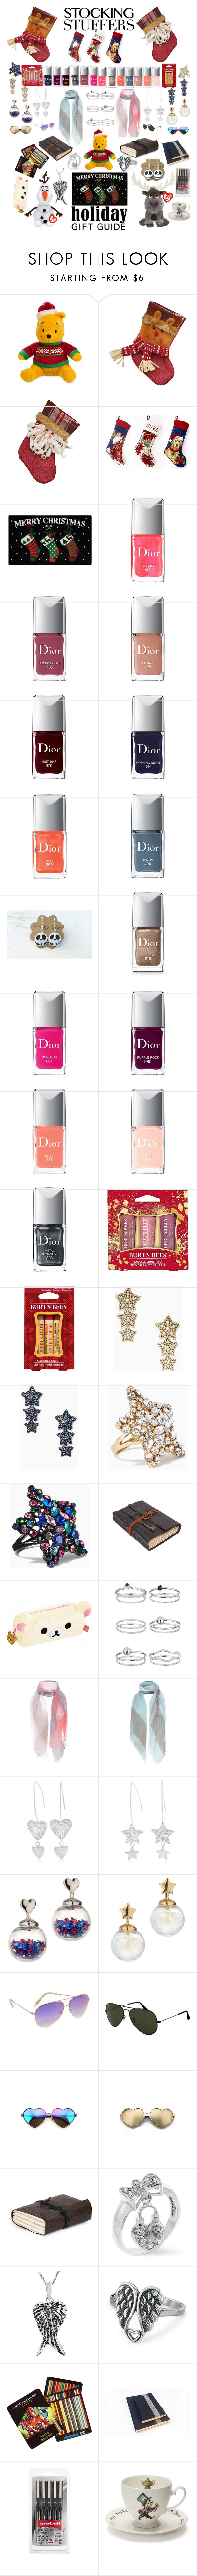 """""""Gift Guide: Stocking Stuffers"""" by hopesparksembers ❤ liked on Polyvore featuring Nourison, Disney, Christian Dior, Burt's Bees, Kate Spade, cutekawaii, Miss Selfridge, Oska, Victoria Beckham and Ray-Ban"""